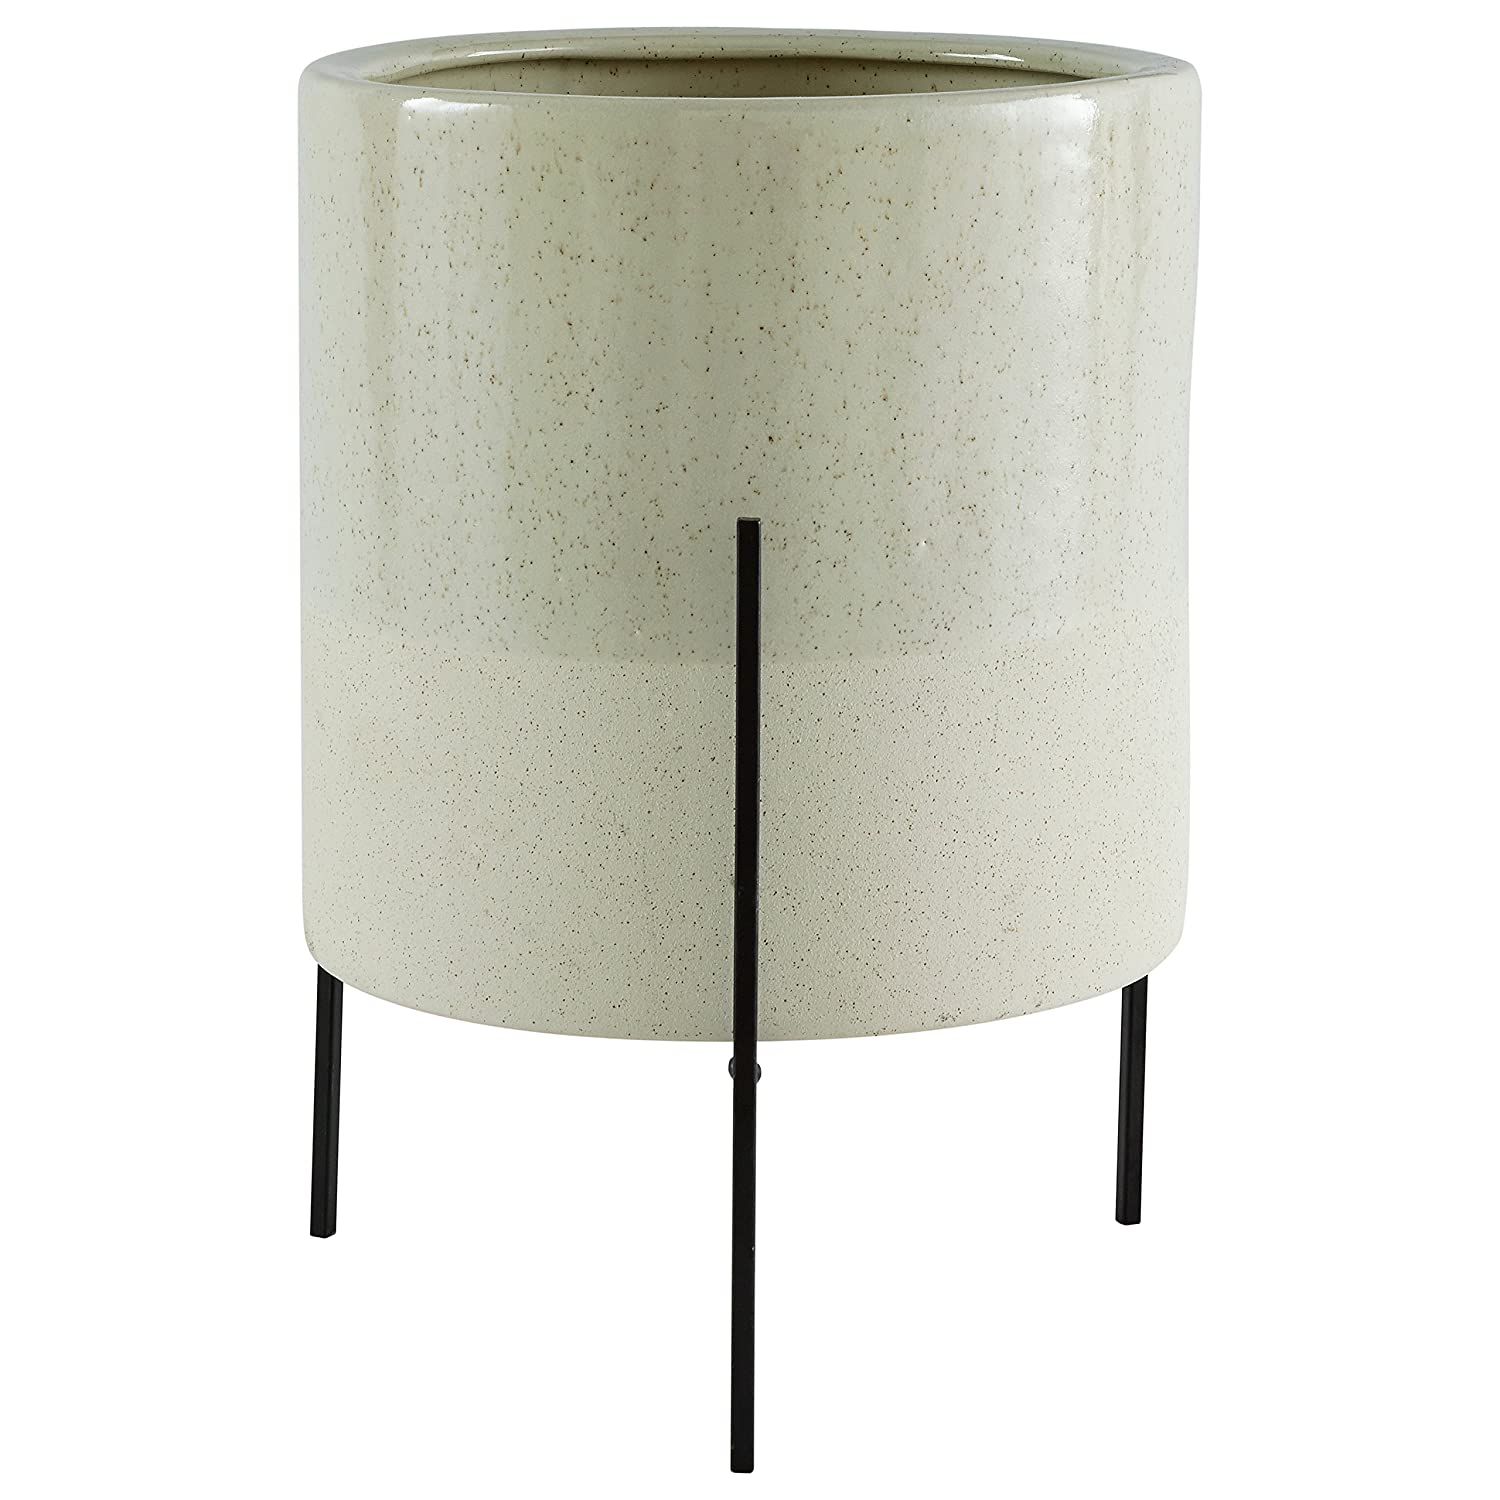 """Rivet Mid Century Ceramic Planter With Iron Stand, 17"""" H, Green by Rivet"""